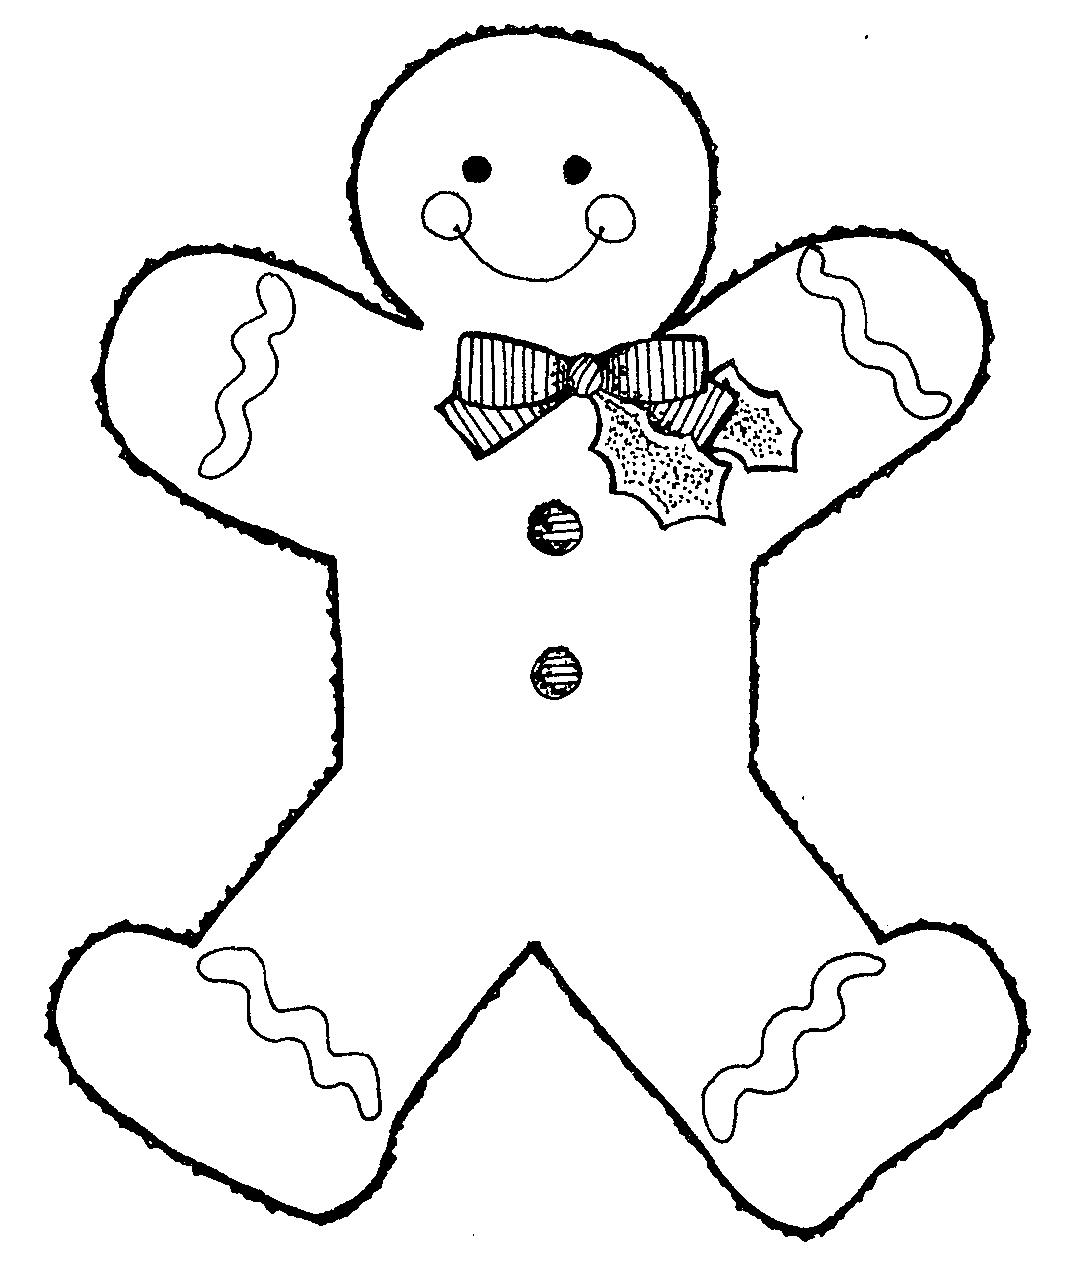 gingerbread man coloring pages printable gingerbread man coloring page free download on clipartmag pages man coloring printable gingerbread